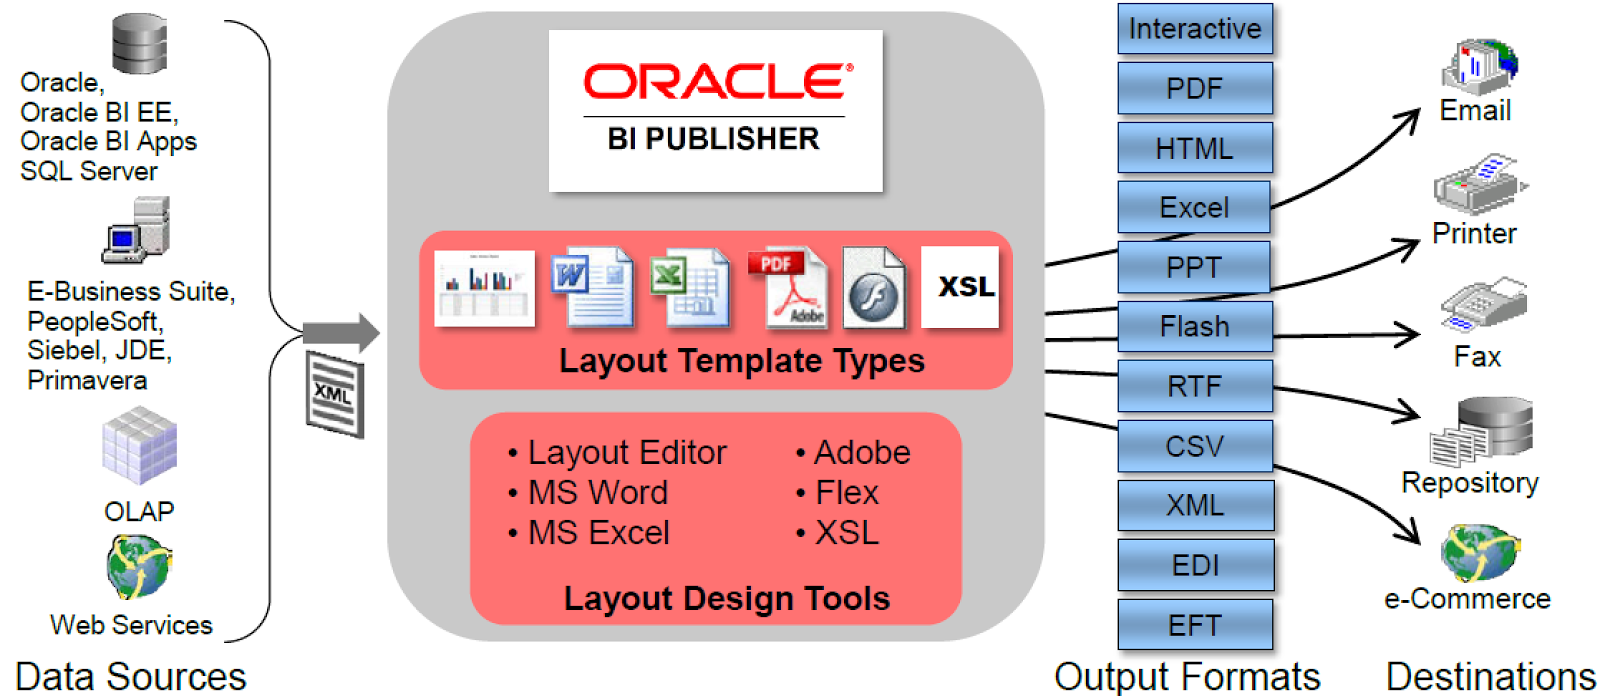 Beyond just data oracle business analytics and more for Bi publisher data template example